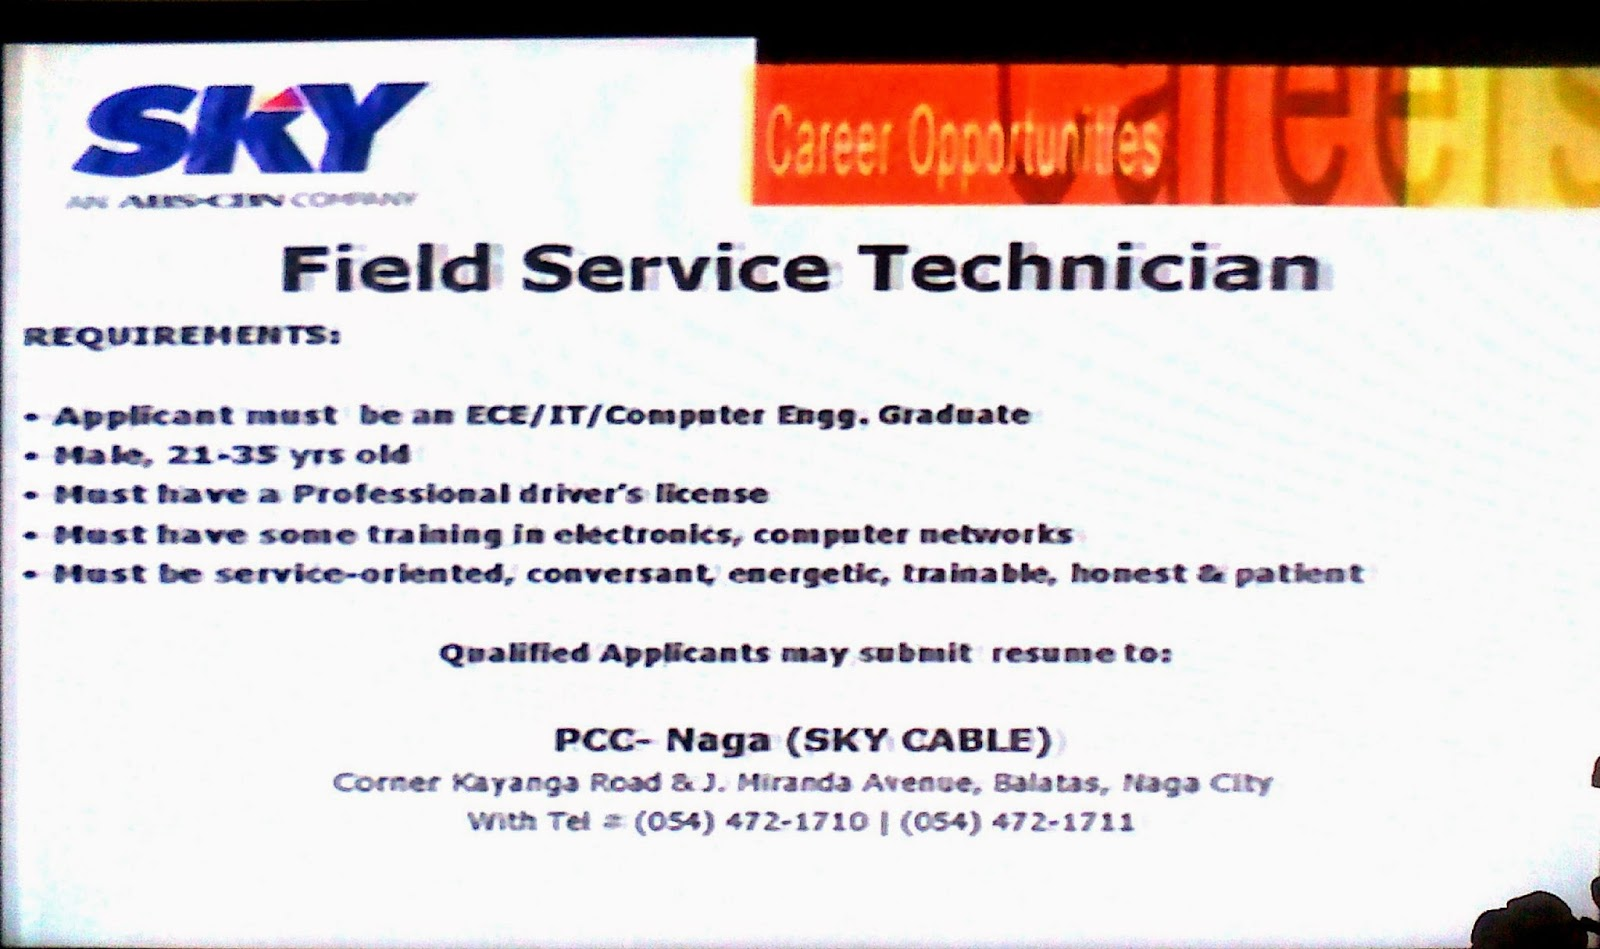 Field Service Technician applicants requirements: 1. ECE/IT/Computer Engg. Graduate; 2.Male, 21 - 35 yrs. old; 3. Must have professional driver's license; 4. Must have some training in electronics, computer networks; 5. Must be service-oriented, conversand, energetic, trainable, honest & patient. Qualified applicants must submit resume to: PCC - NAGA (SKY CABLE), Corner Kayanga Road & J. Miranda Avenue, Balatas, Naga City. Telephone numbers (054) 472-1710 / (054) 472-1711